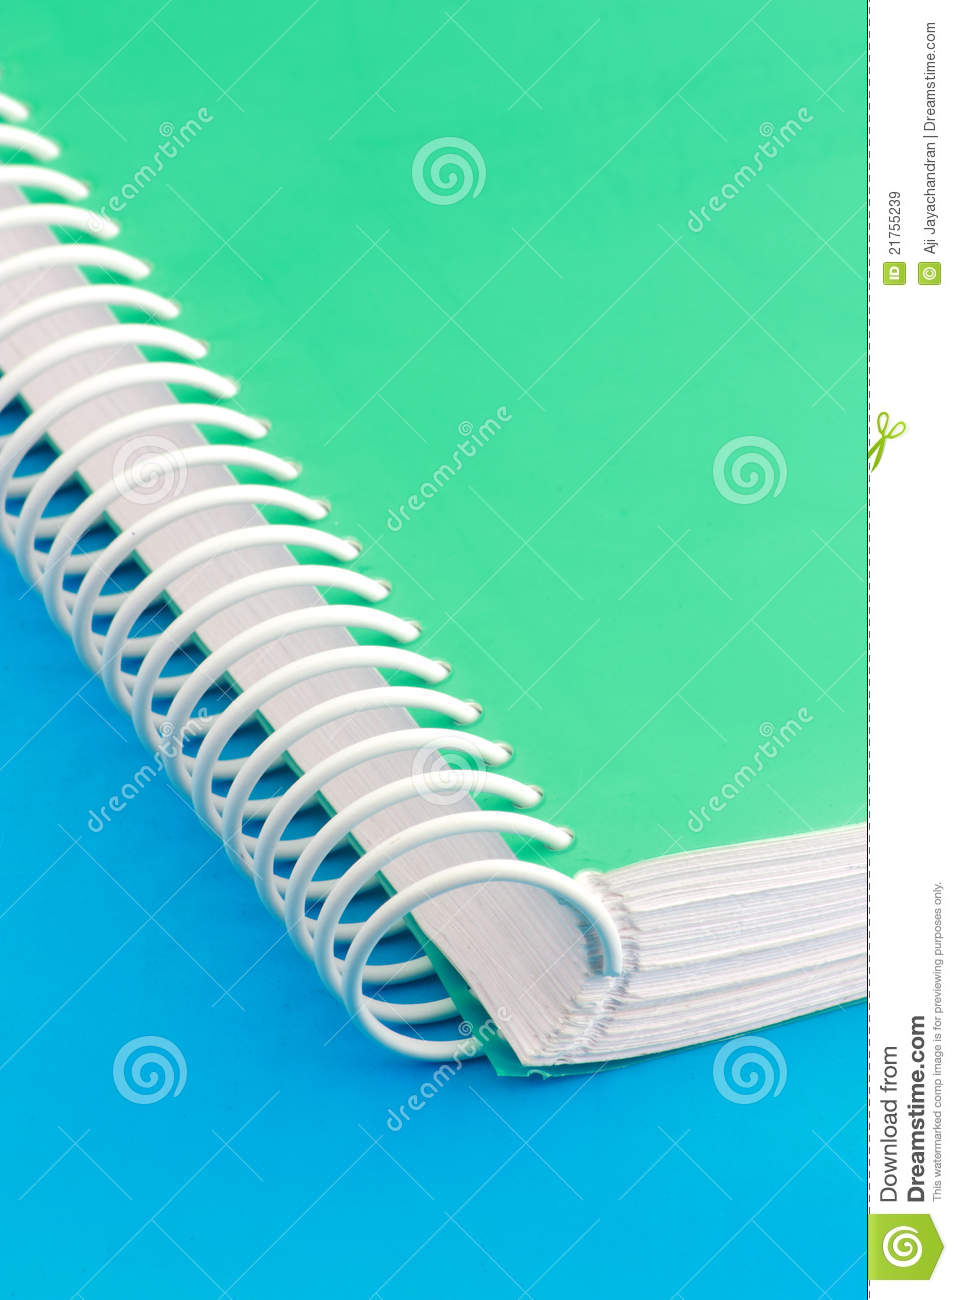 spiral binding stock image  image of book  text  blue